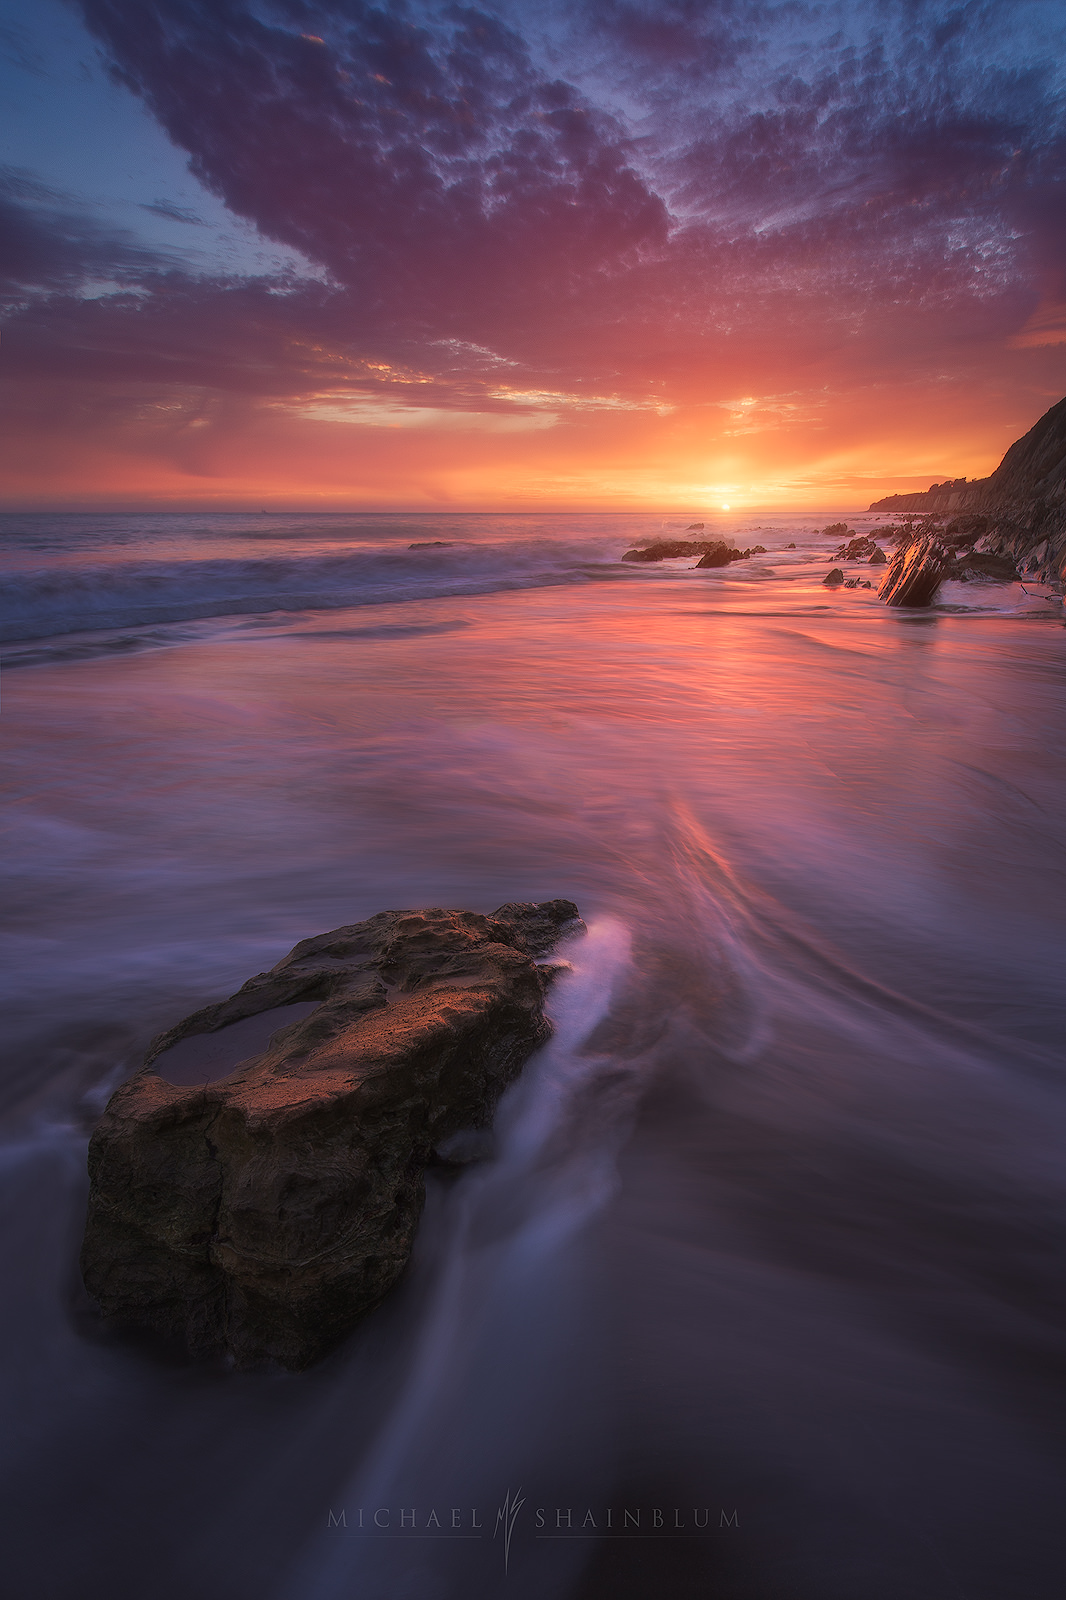 Santa Barbara Seascape, Coastal Landscape Photography.